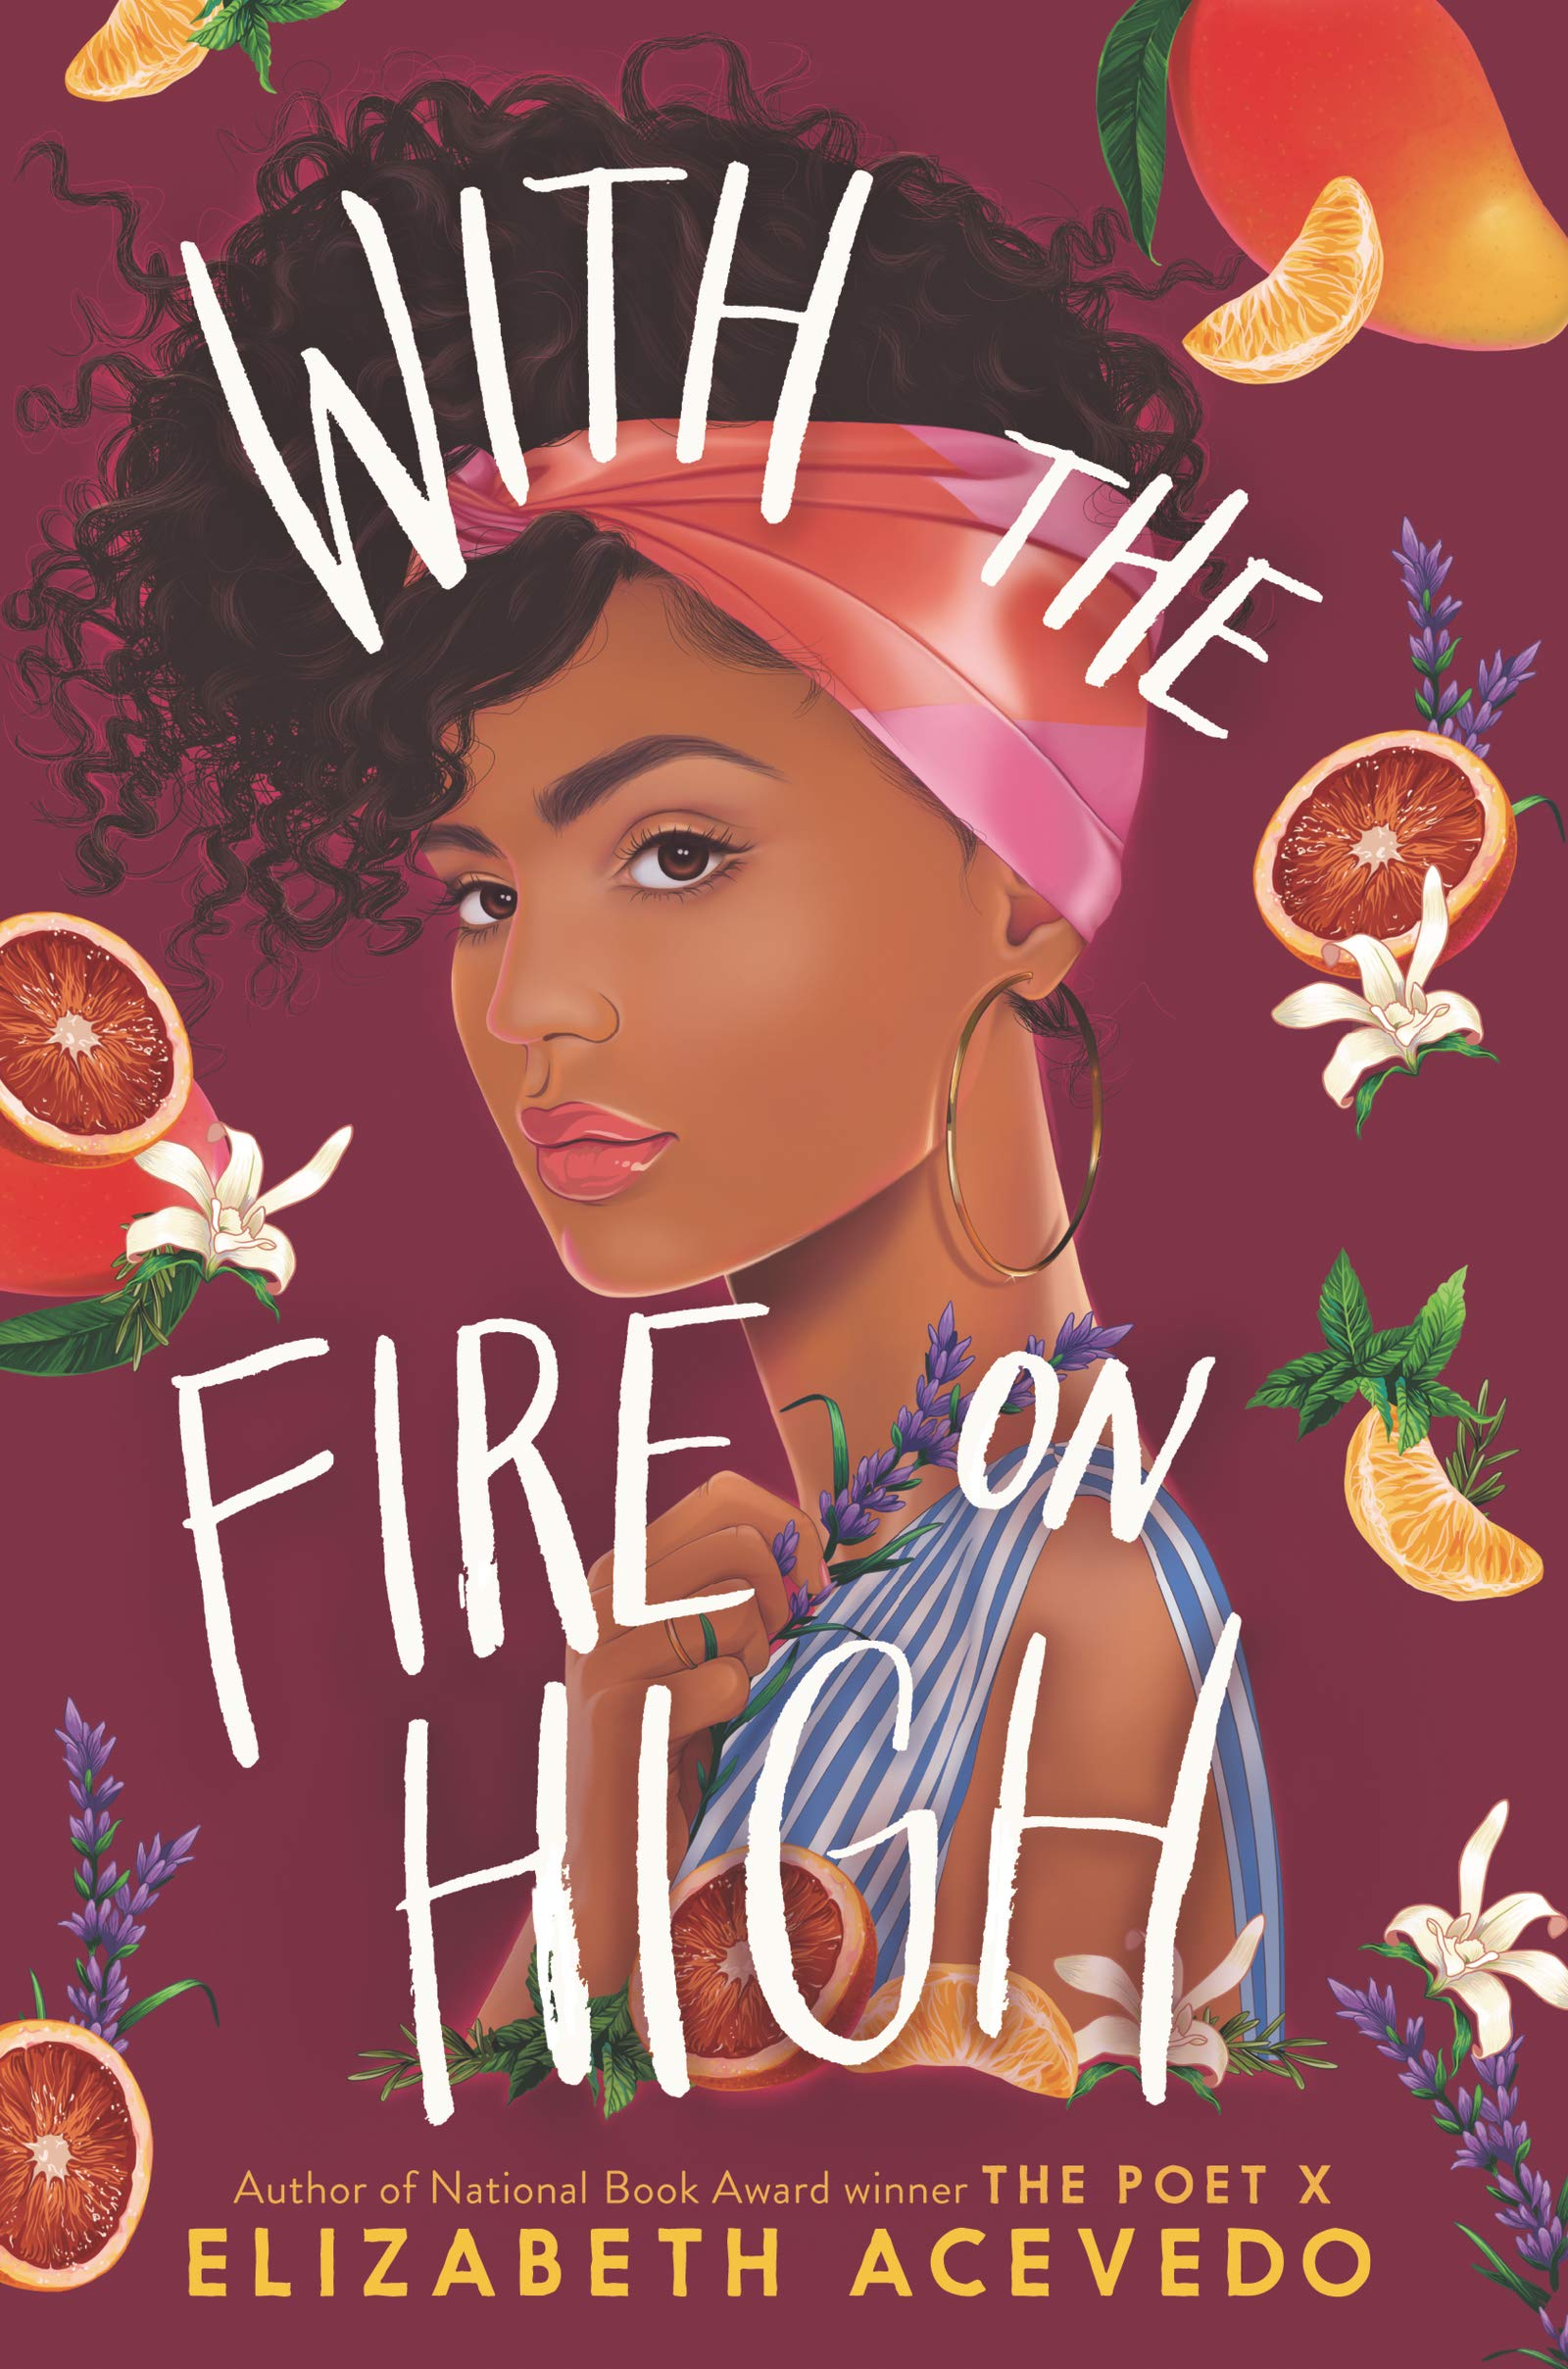 With the Fire on High: Amazon.ca: Acevedo, Elizabeth: Books